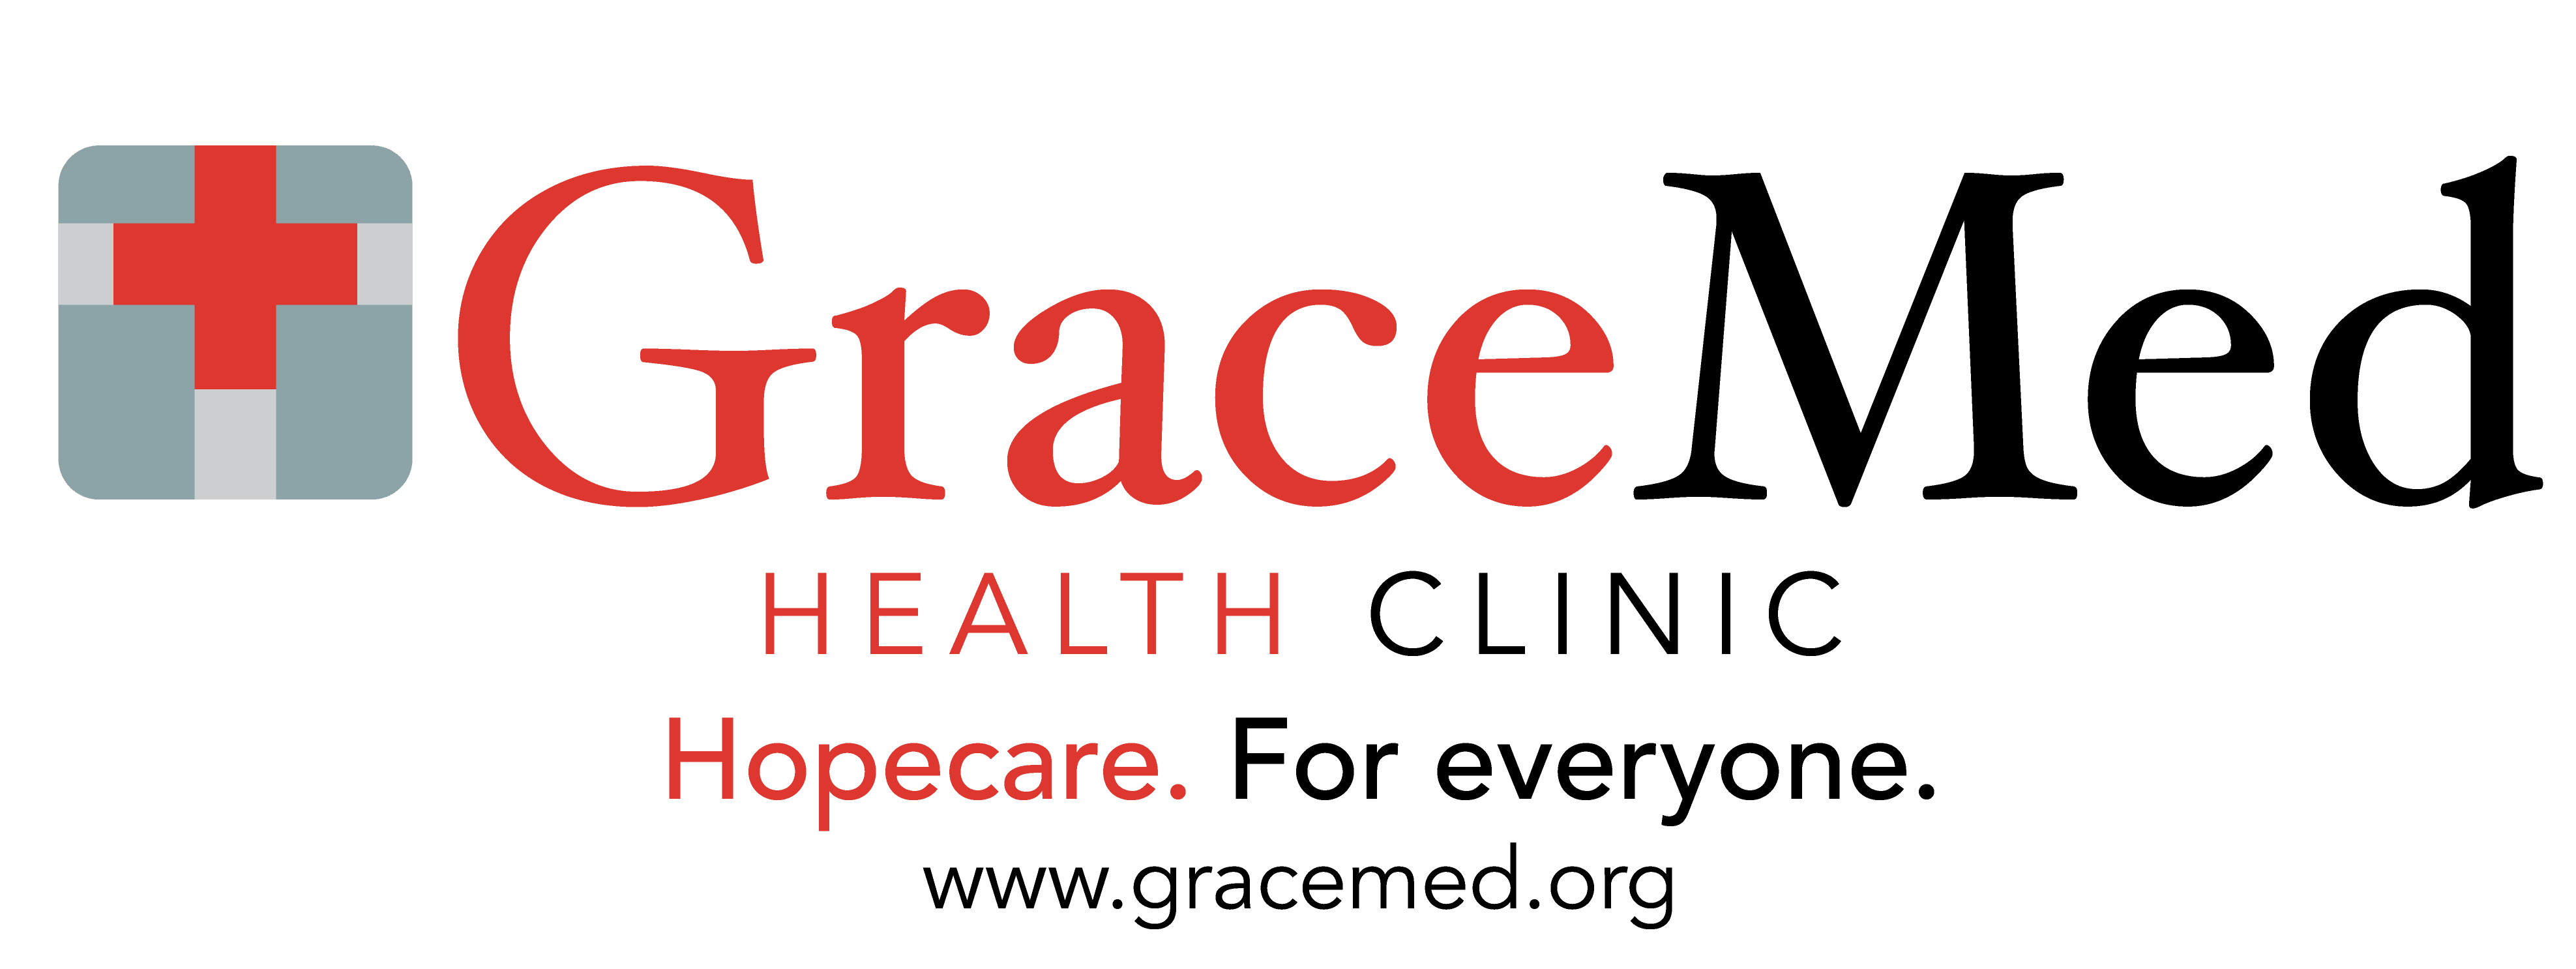 GraceMed Health Clinic Inc logo